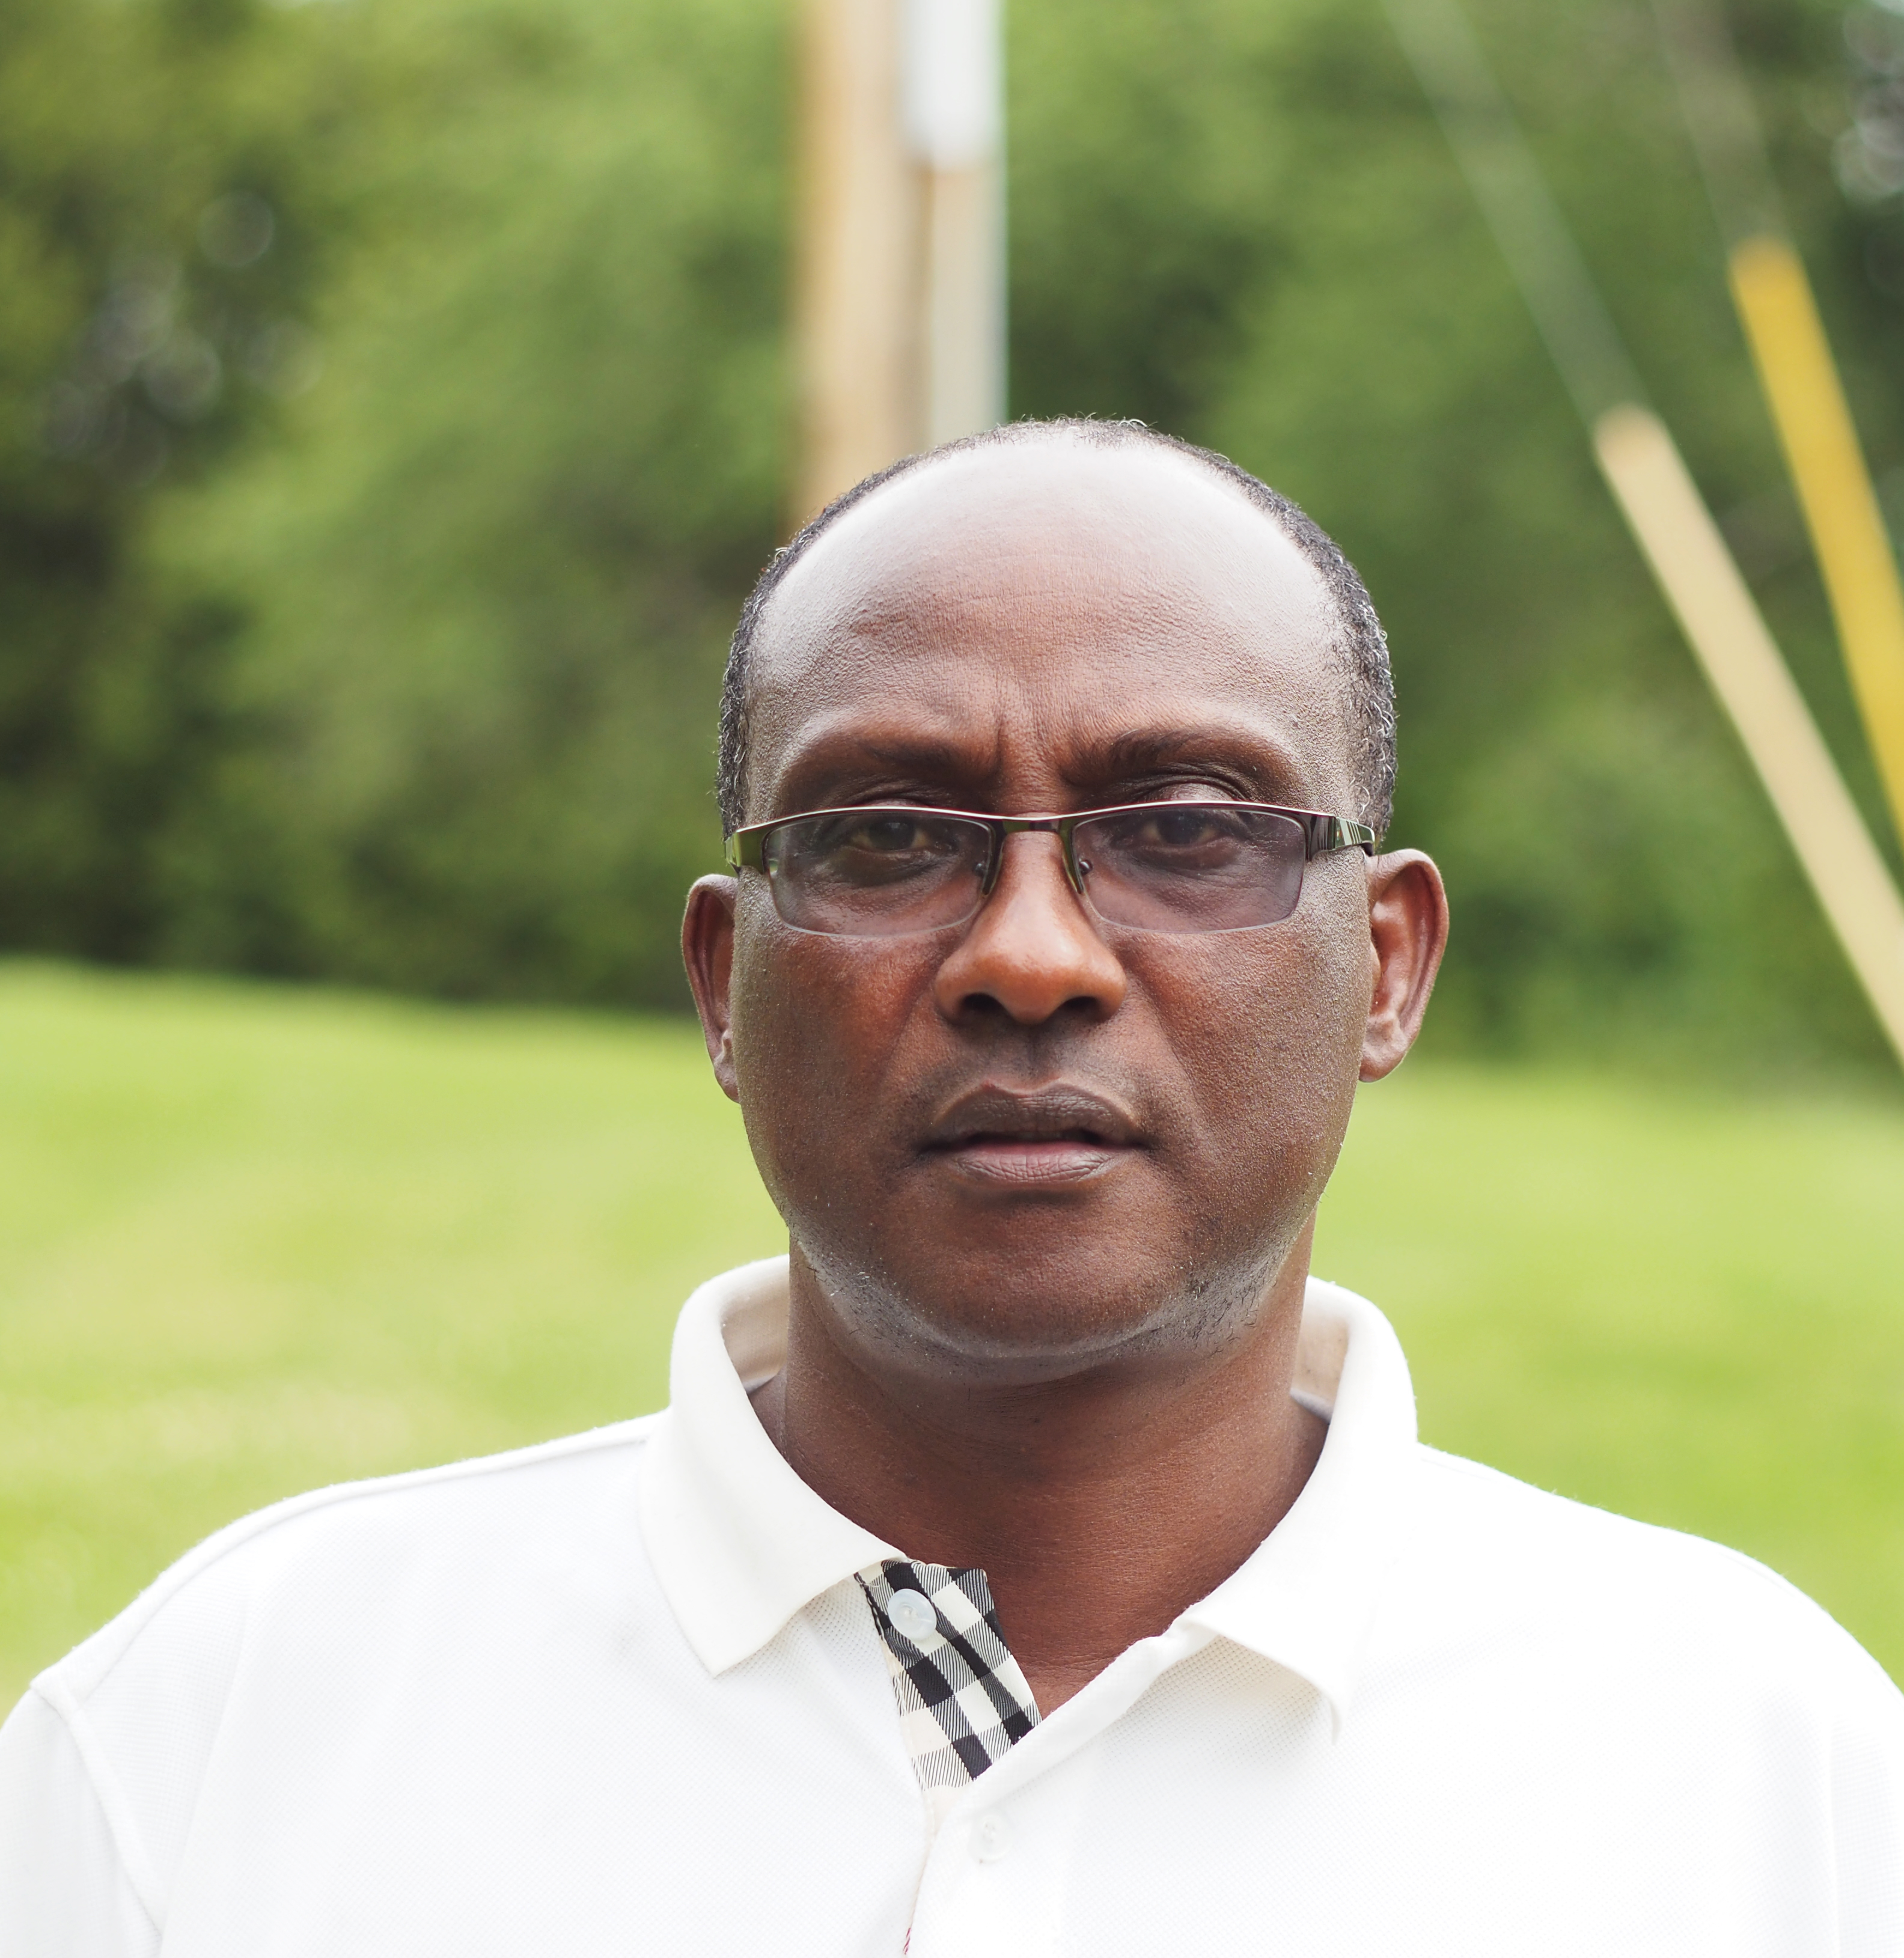 'We have moved a step': A conversation with Johnson Mugaga of Rwanda